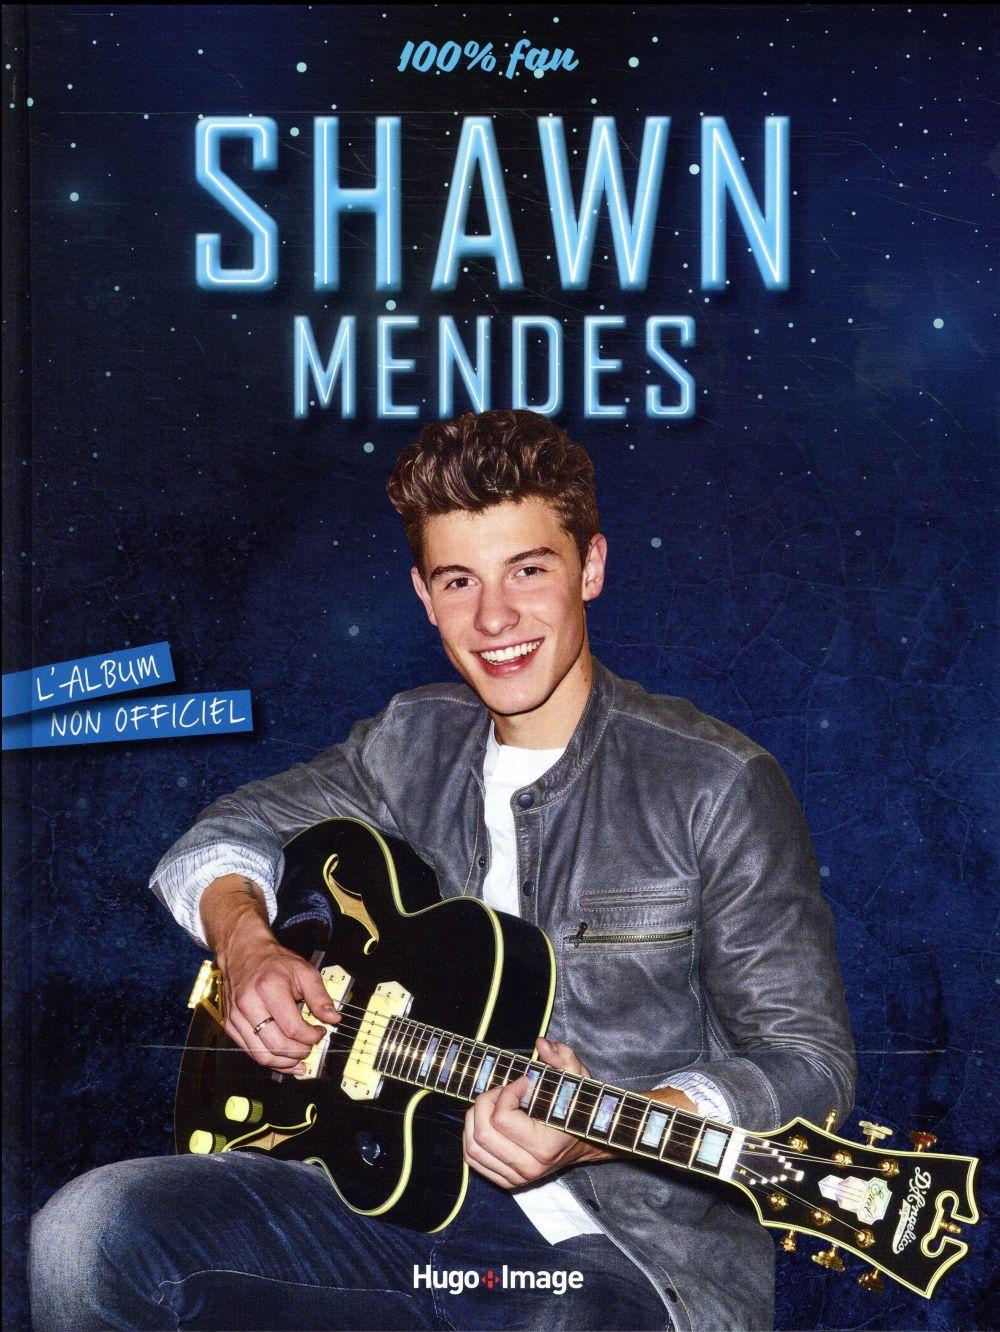 100% fan ; Shawn Mendes ; l'album non officiel  - Sandra Lebrun